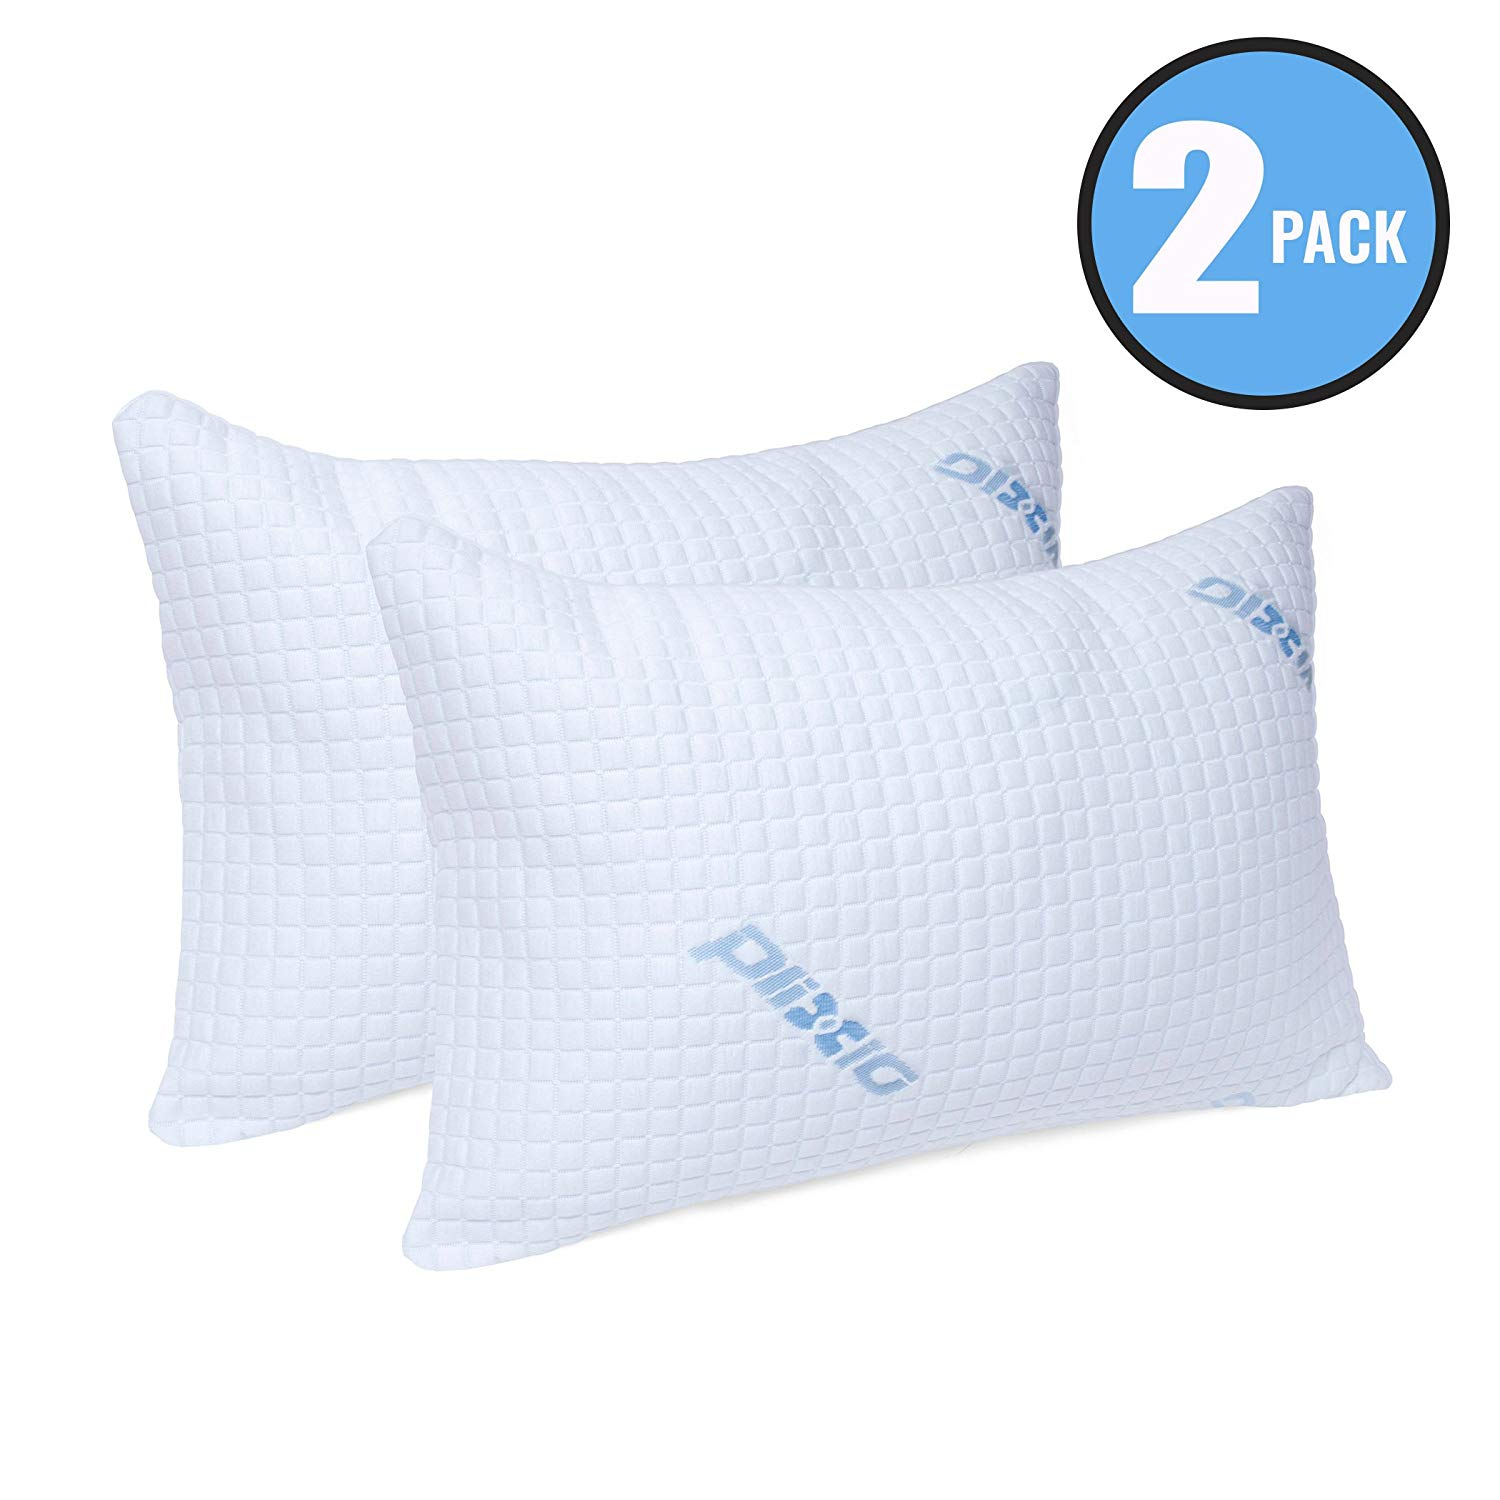 Deluxe Cooling Shredded Memory Foam Pillow with Bamboo Hypoallergenic Cover- 2 Pack King - bamboo pillows